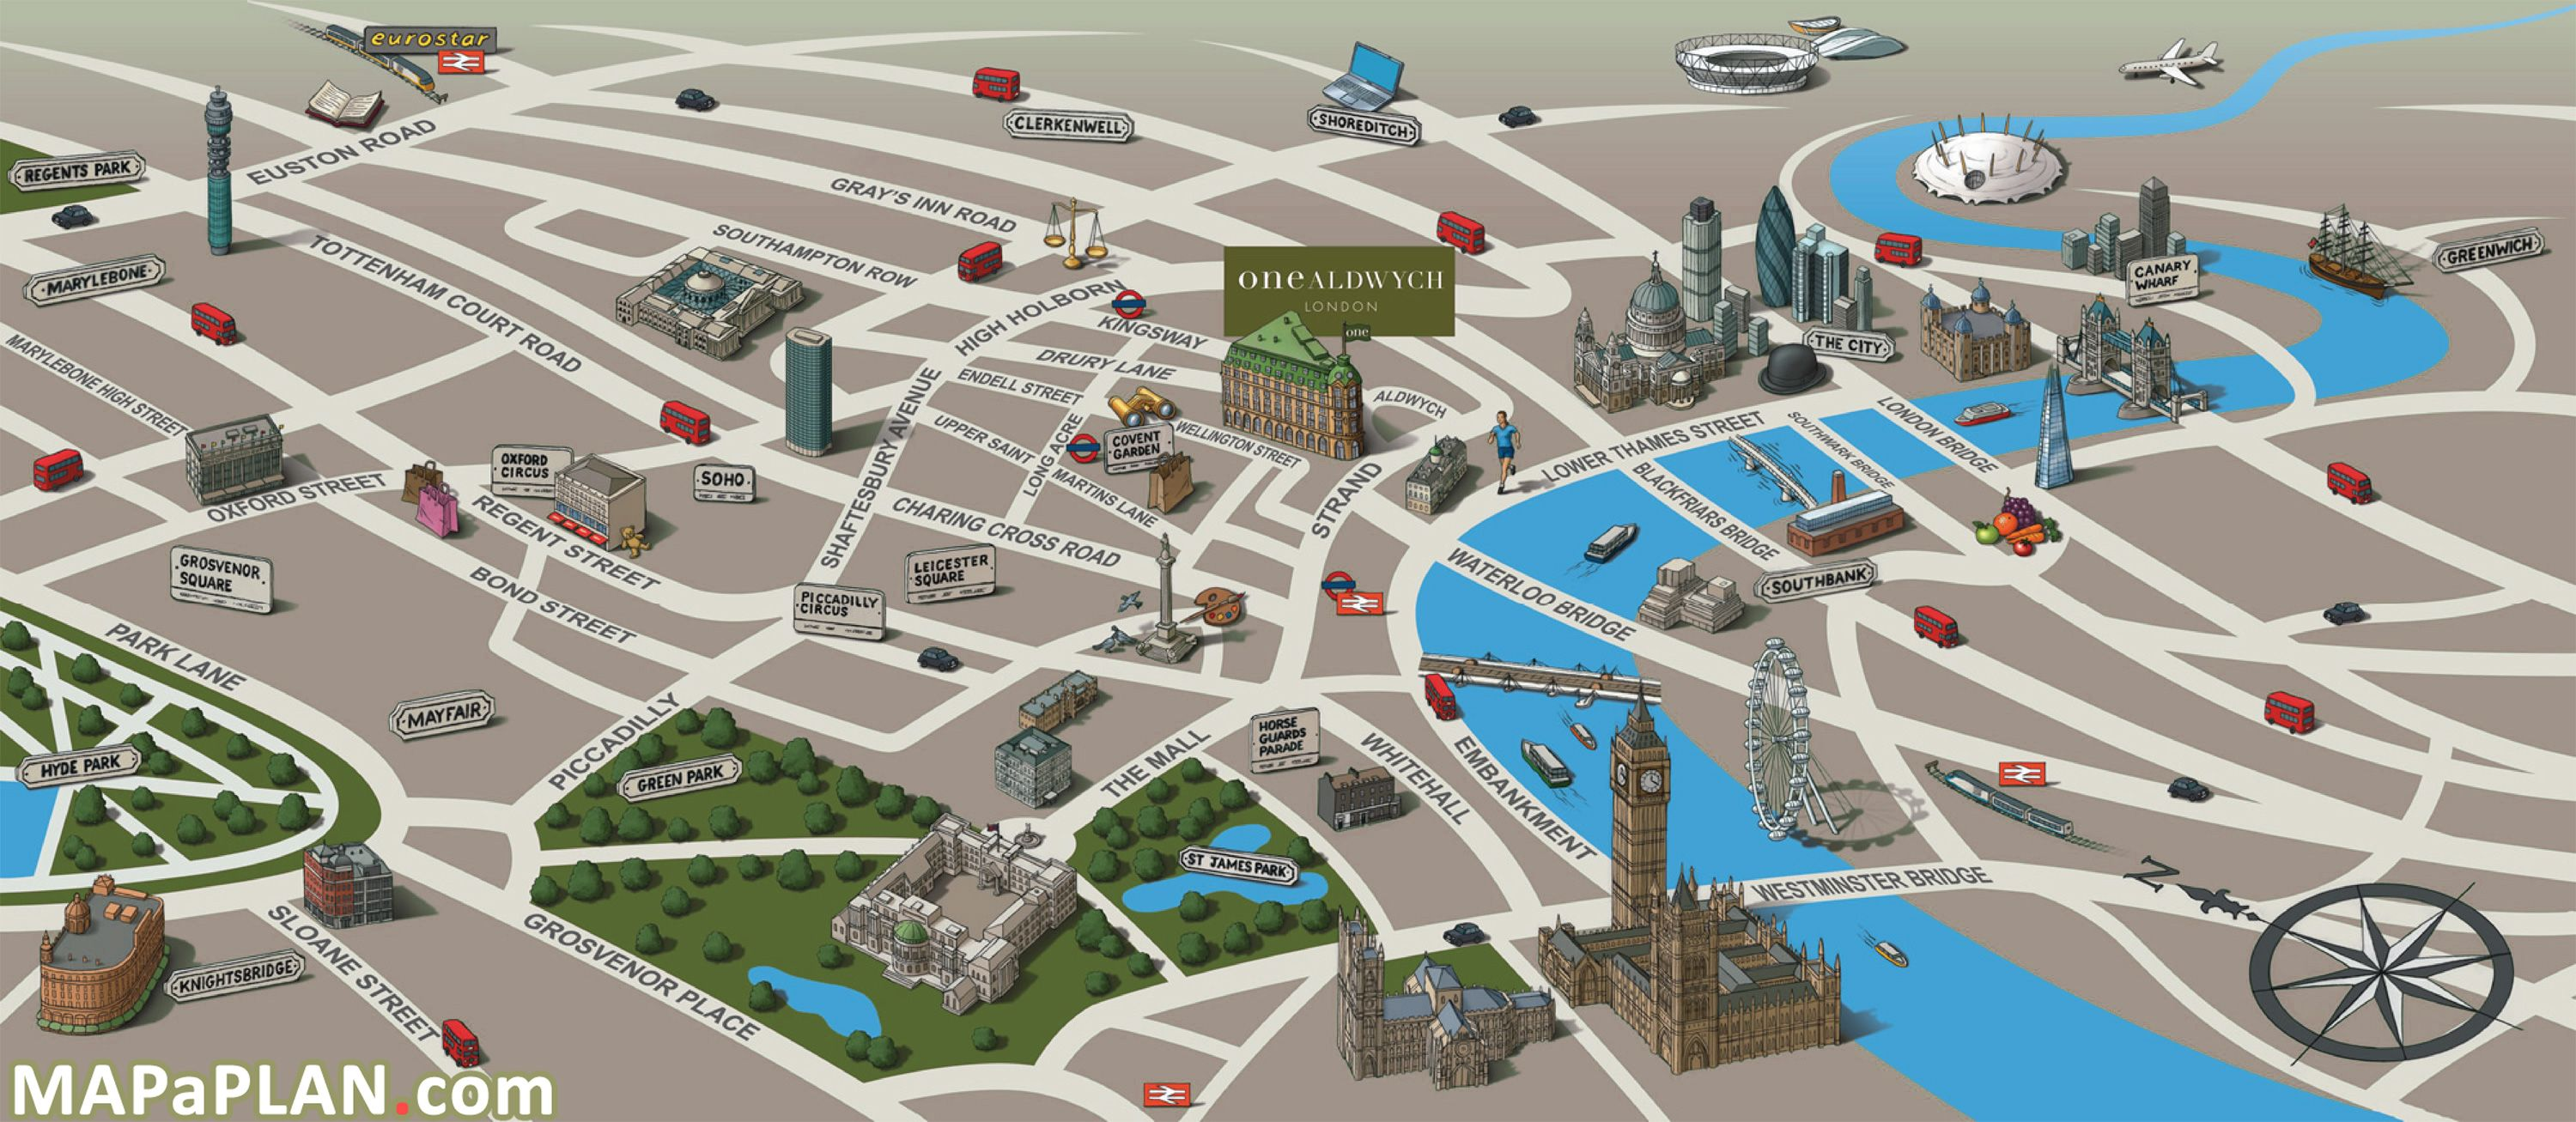 London top tourist attractions map Landmarks birds eye view London